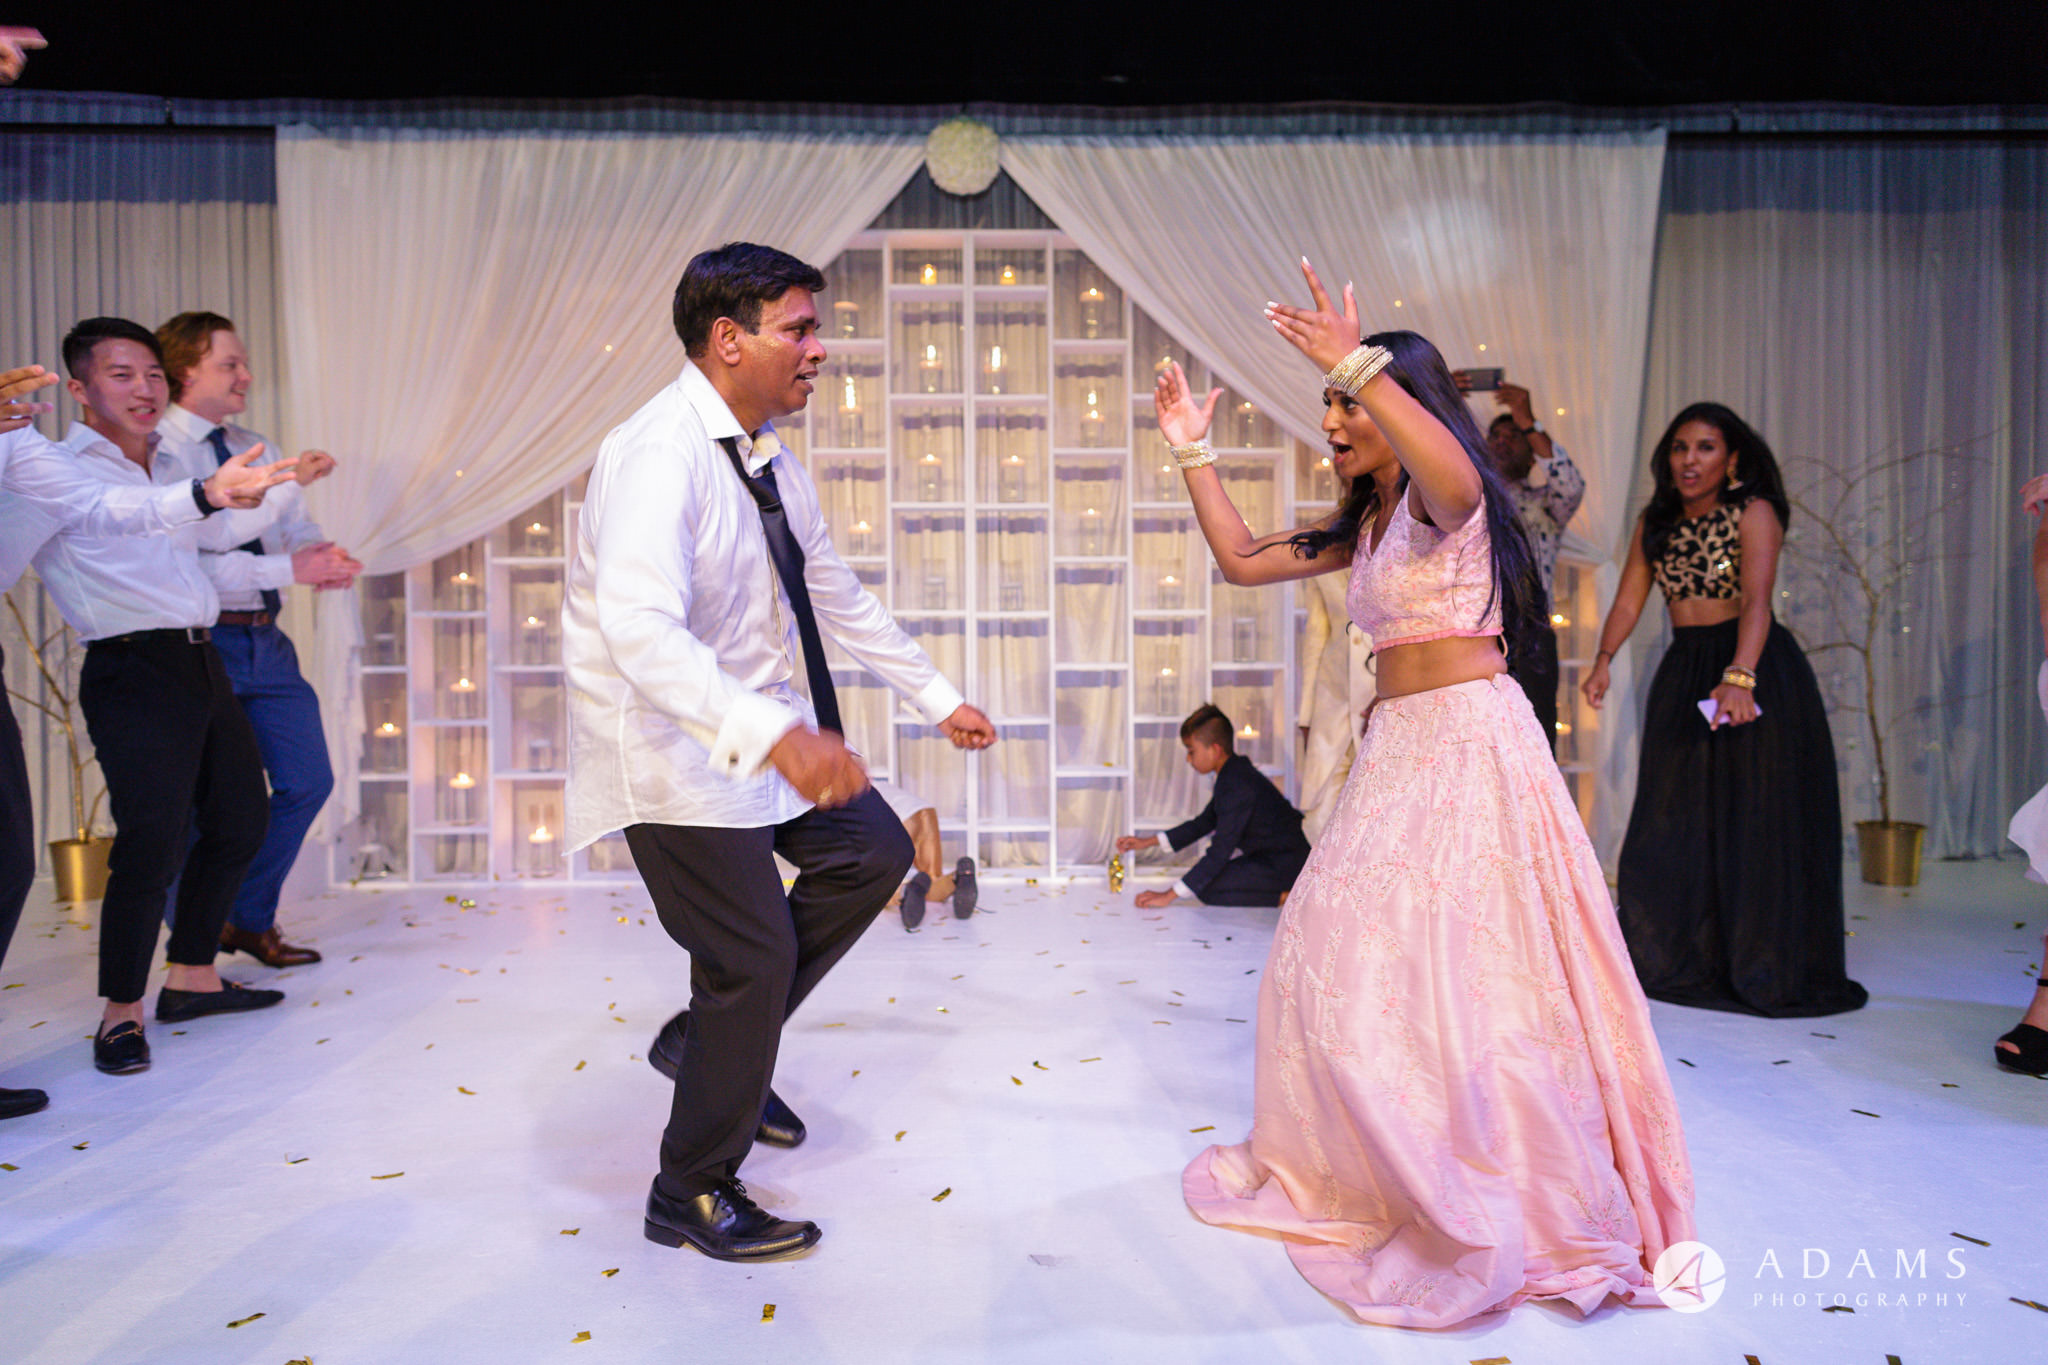 Oslo Wedding Photo fatehr and bride dance together